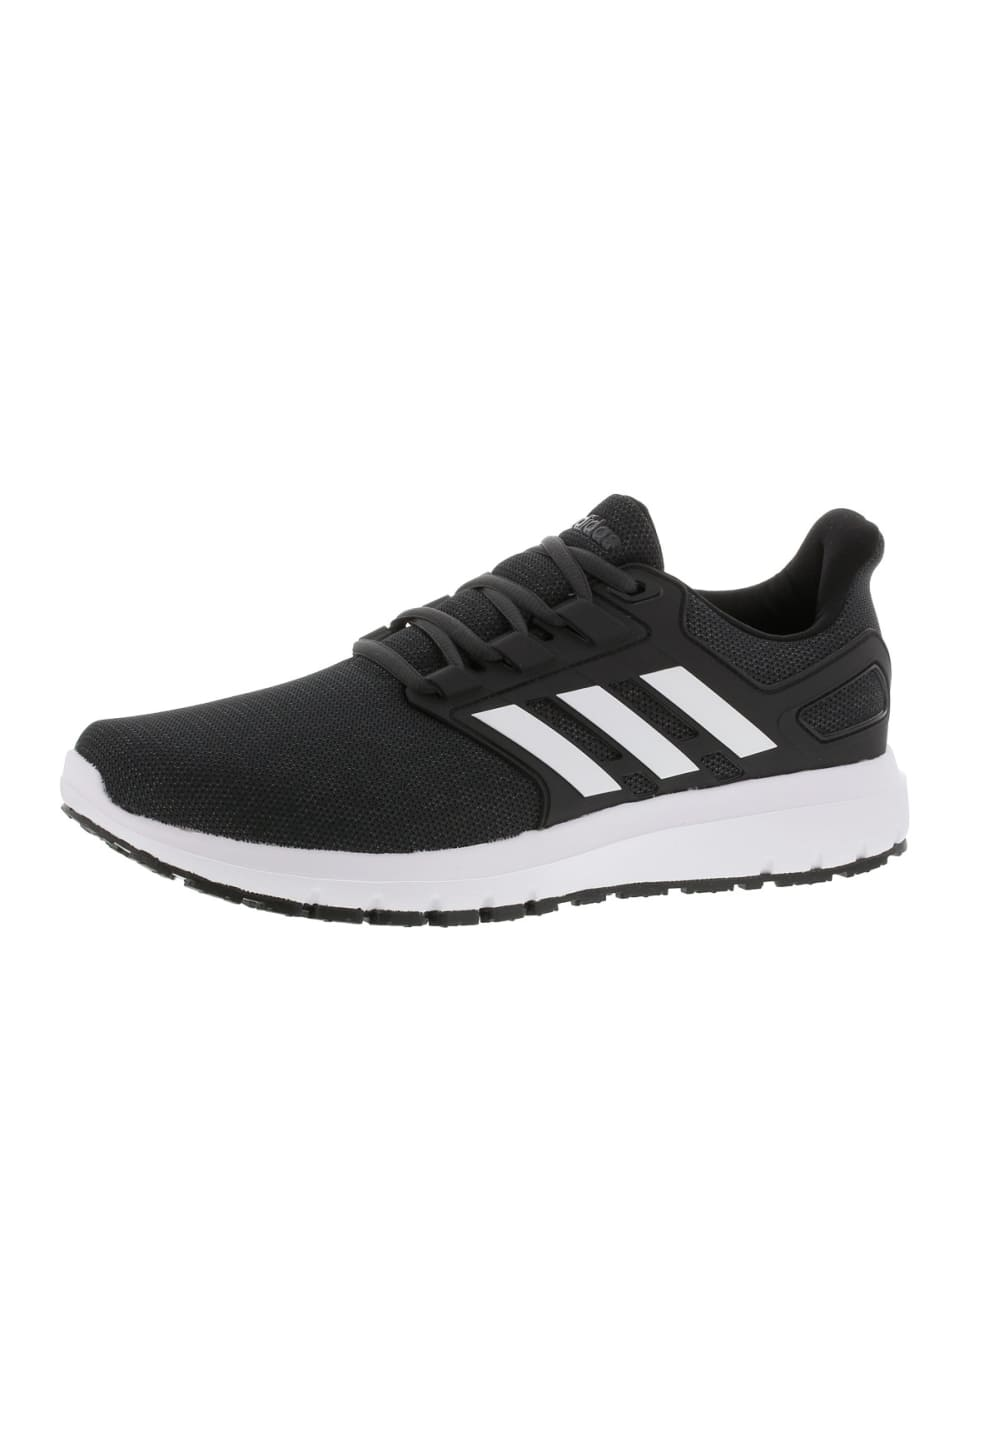 adidas Energy Cloud 2 - Running shoes for Men - Black  6ce88df9f55ce